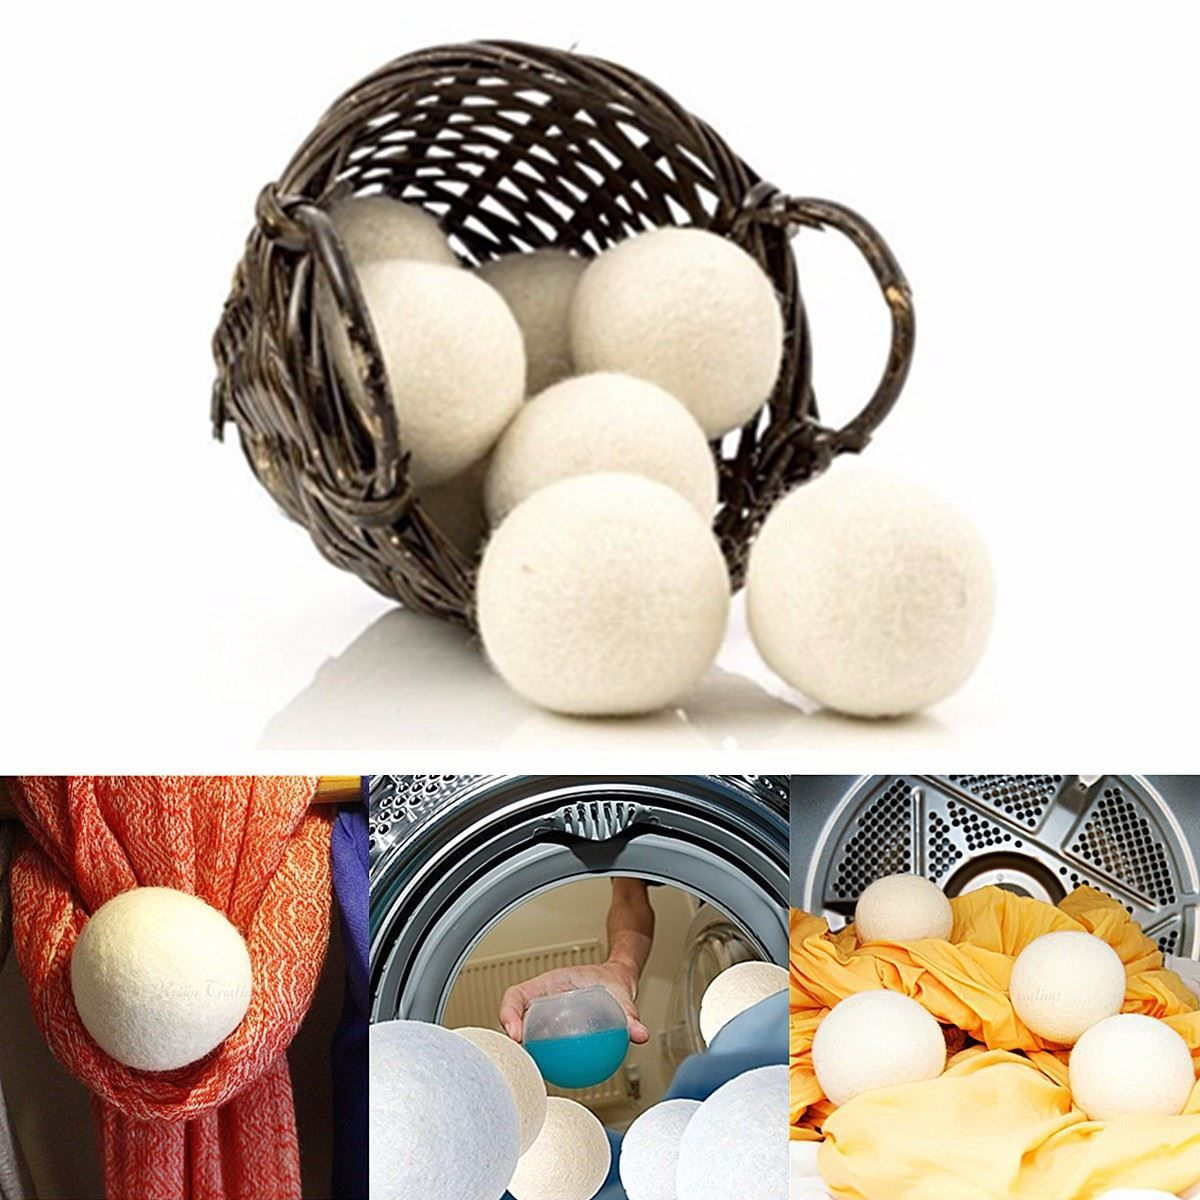 6pcs Pack Laundry Clean Ball Reusable Natural Organic Laundry Fabric Softener Ball Premium Organic Wool Dr Wool Dryer Balls Laundry Fabric Softener Dryer Balls